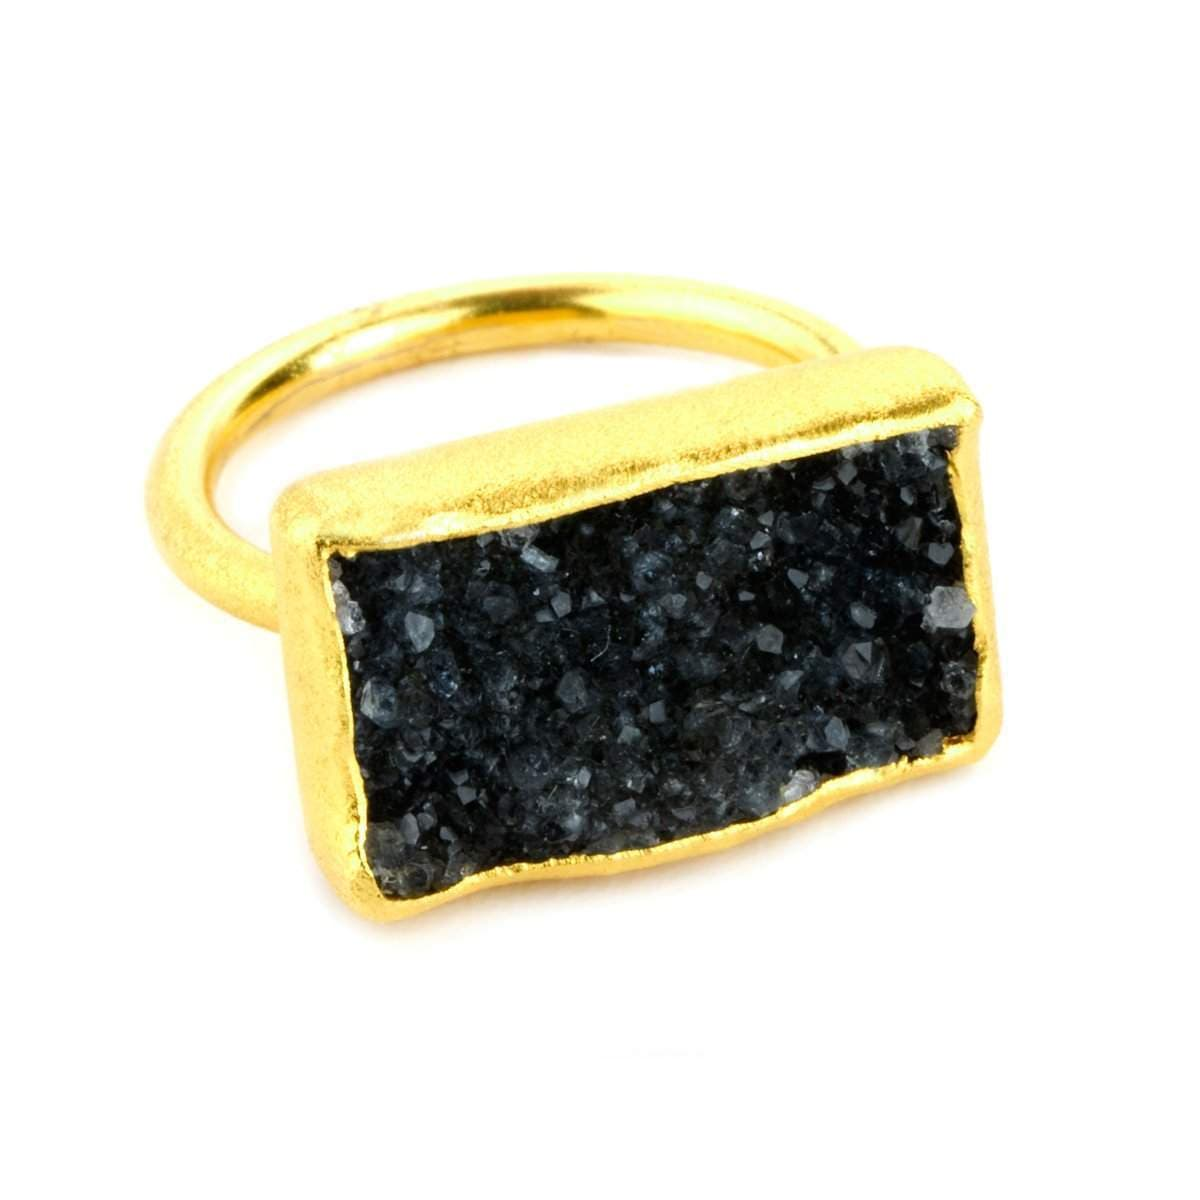 Nirvana 22k Gold Plated Black Druzy Ring - G7012R